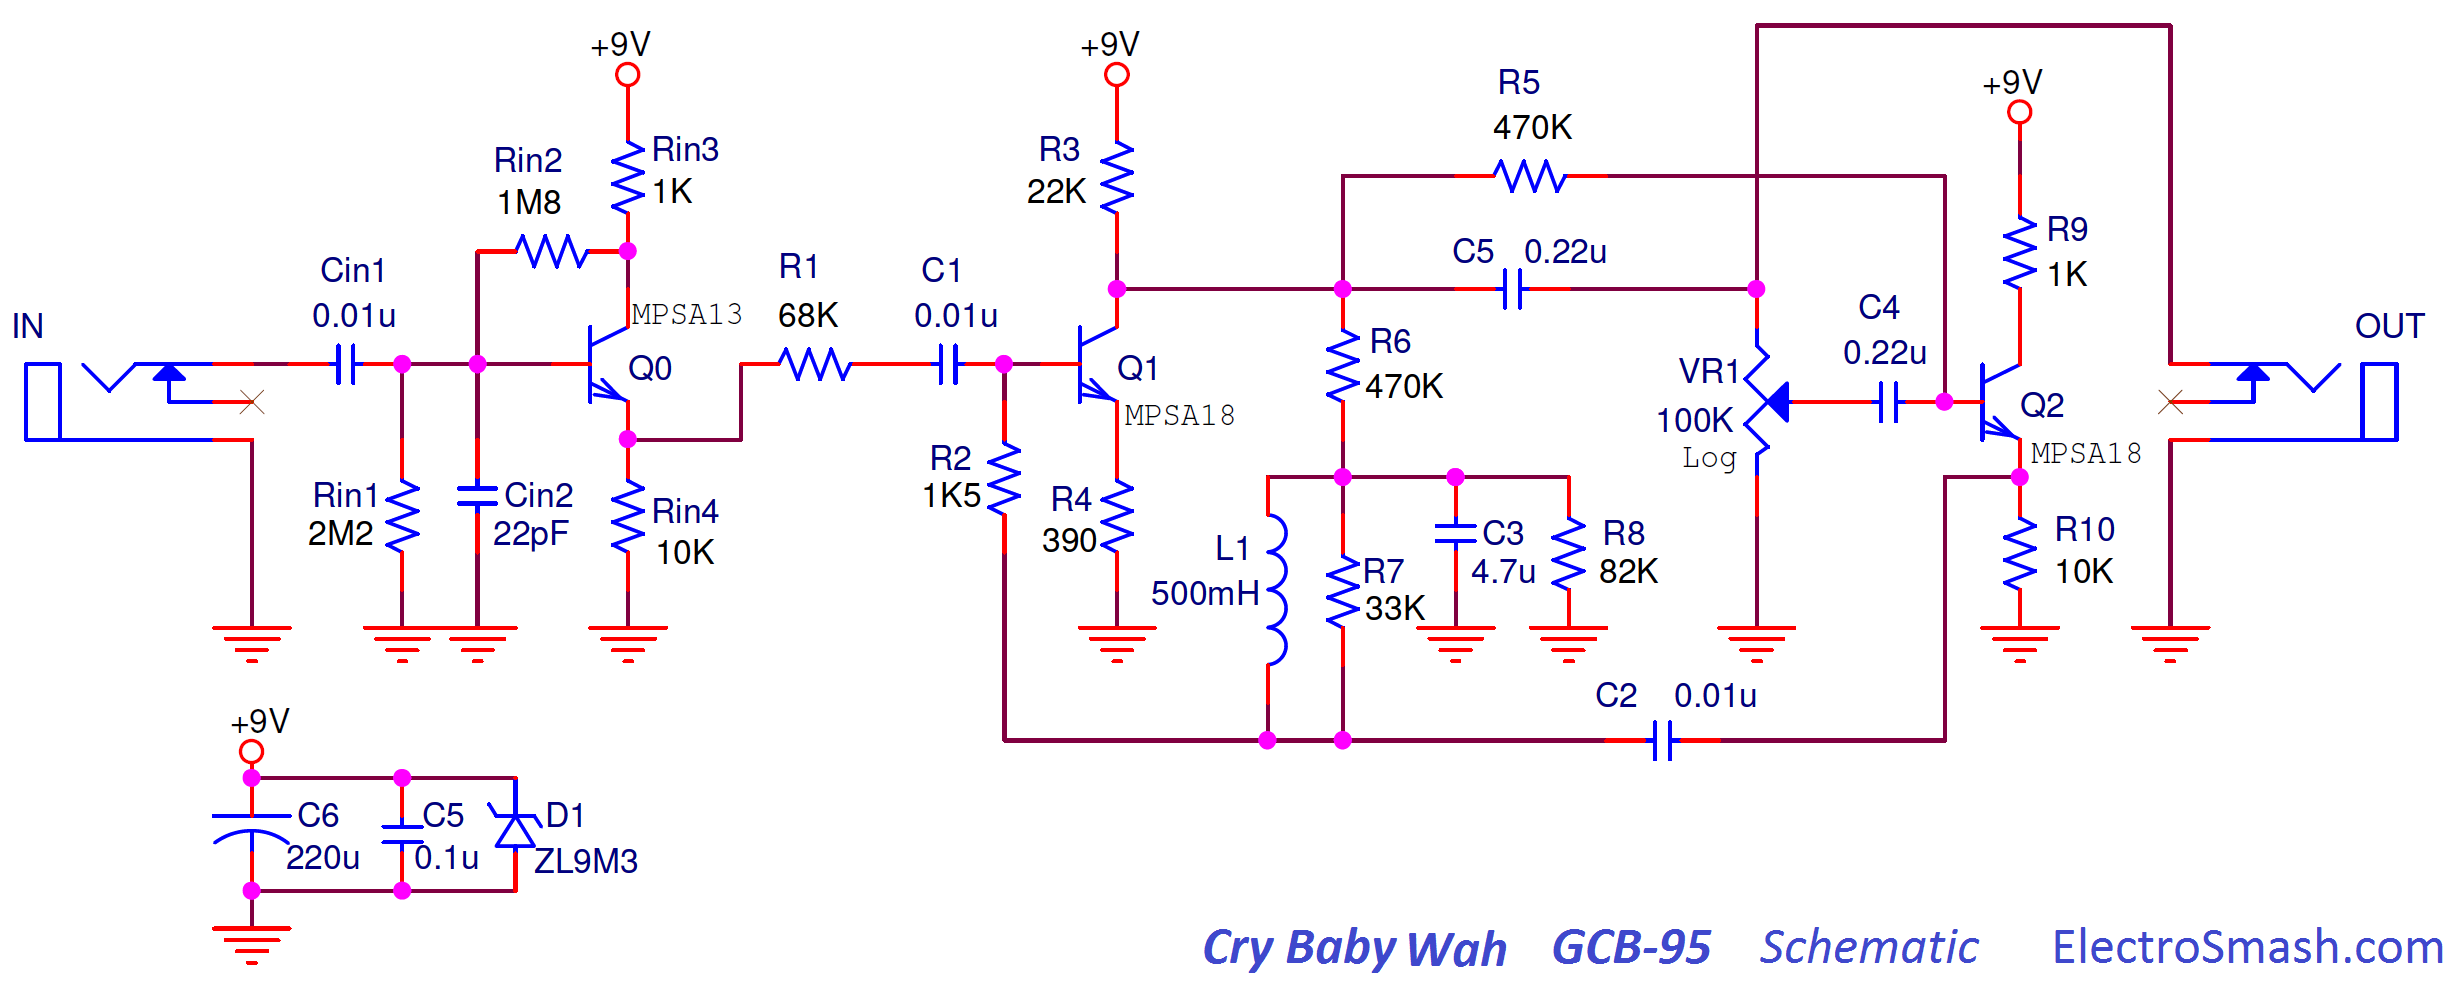 electrosmash dunlop crybaby gcb 95 circuit analysis the dunlop cry baby gcb 95 schematic